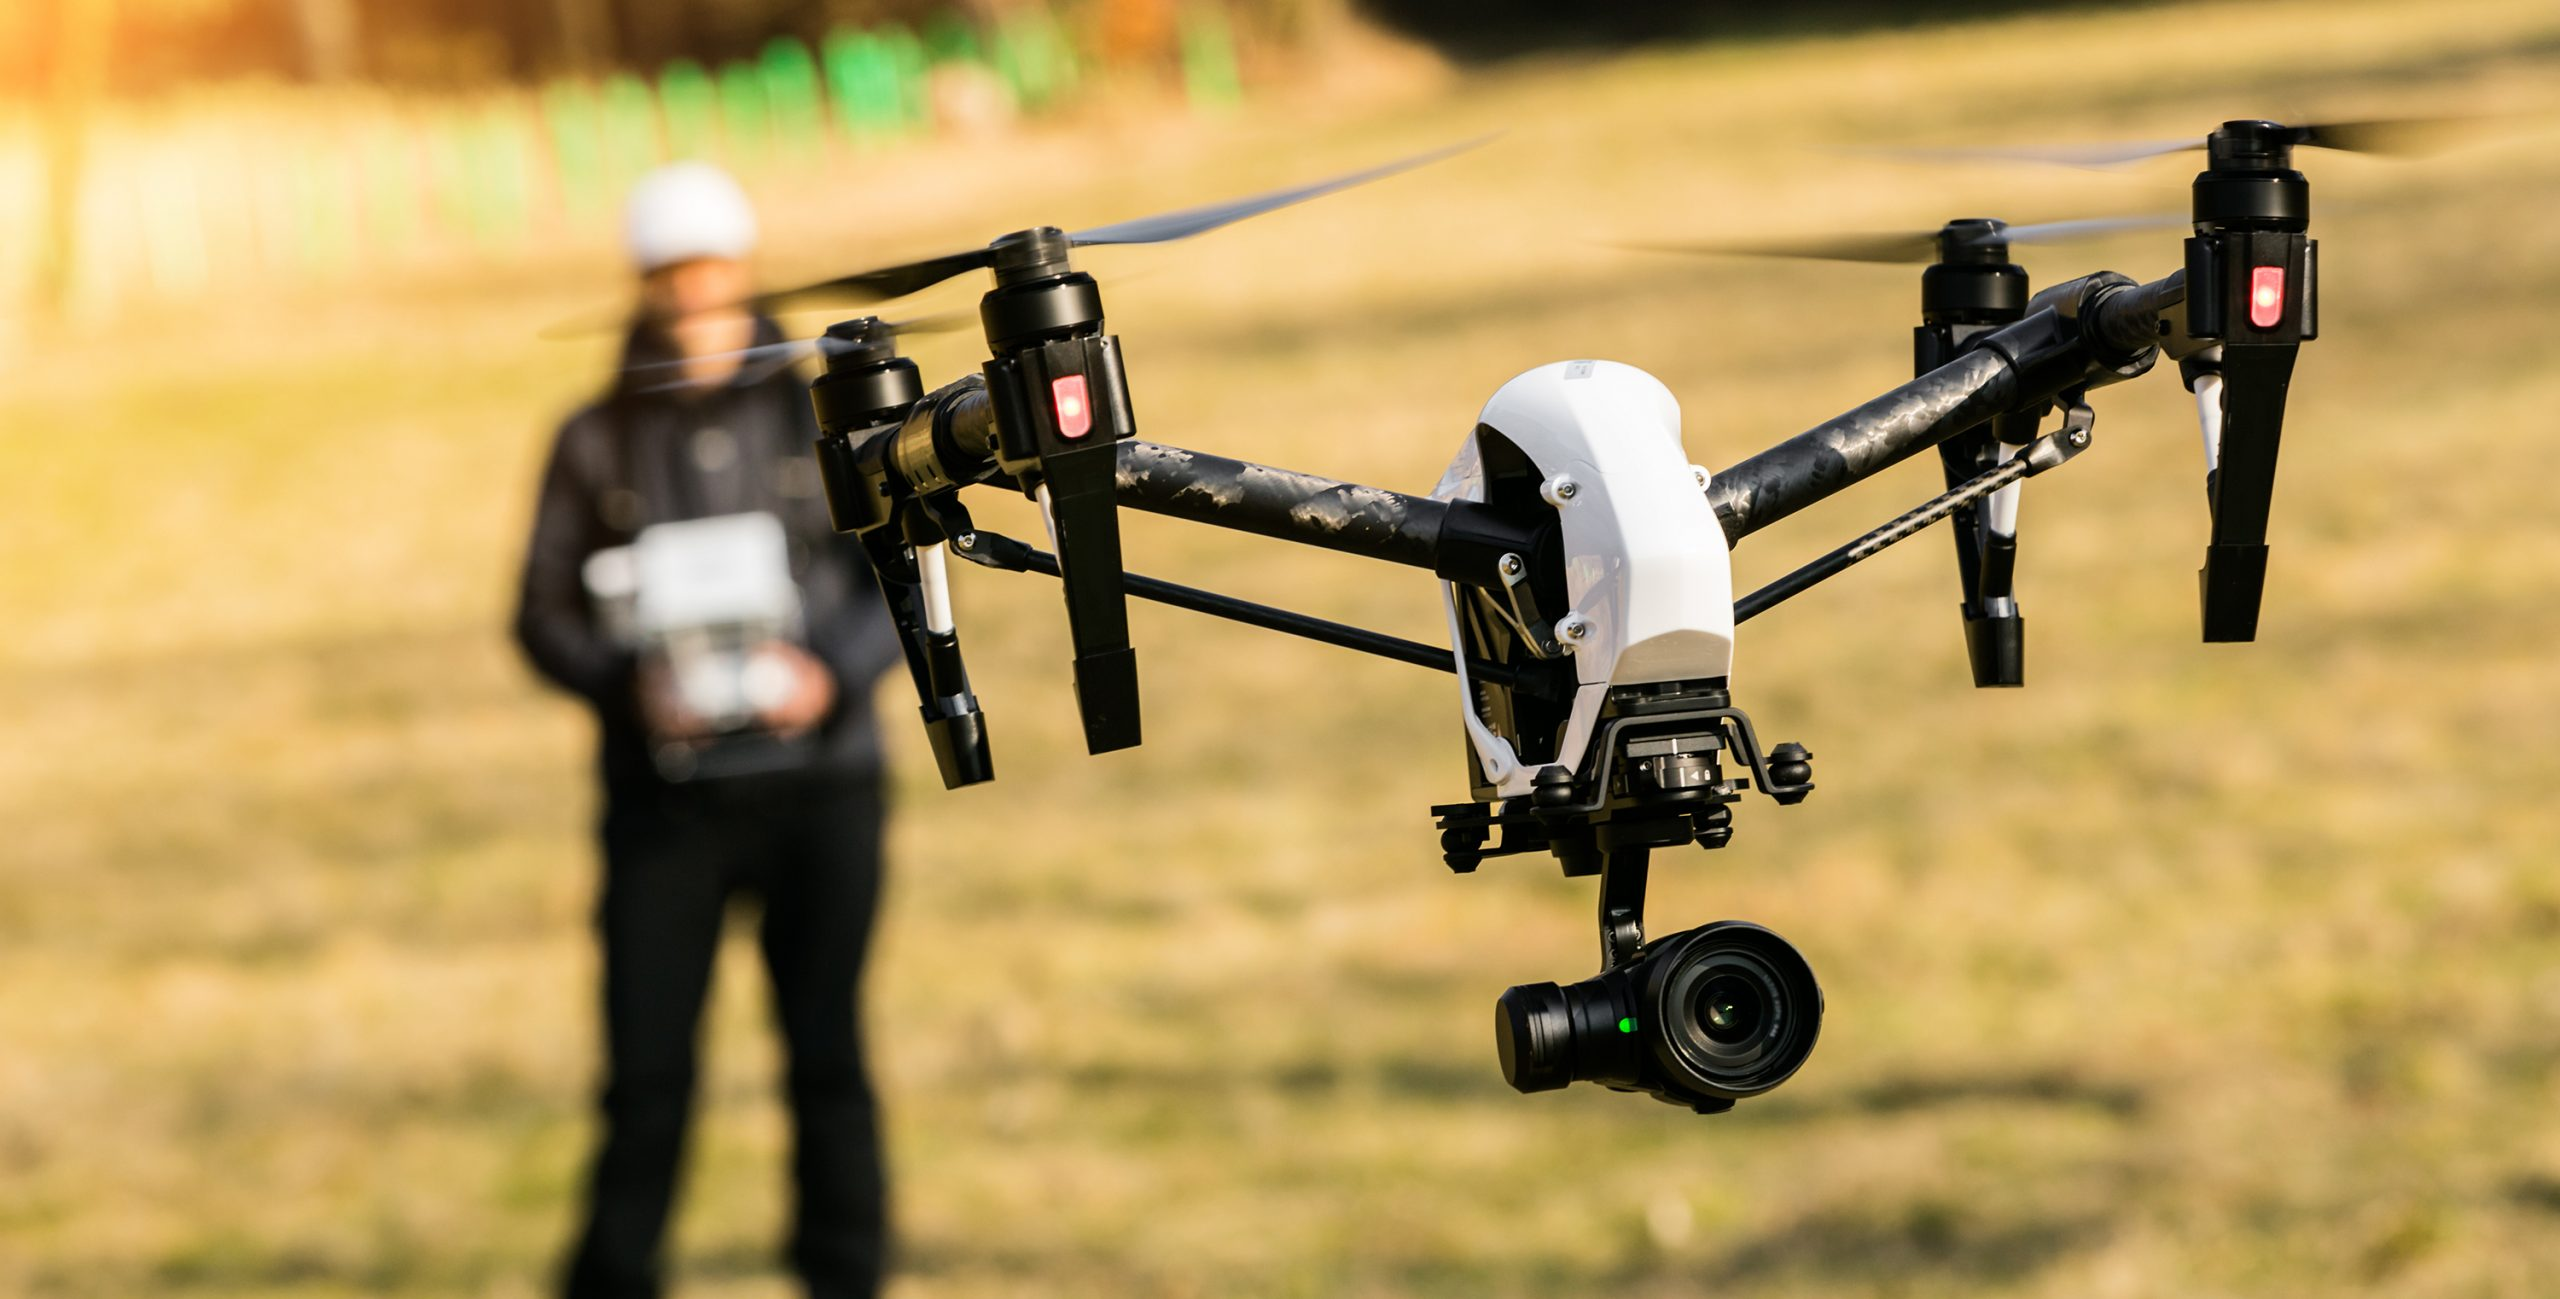 vlos-rules-for-recreational-drone-pilots